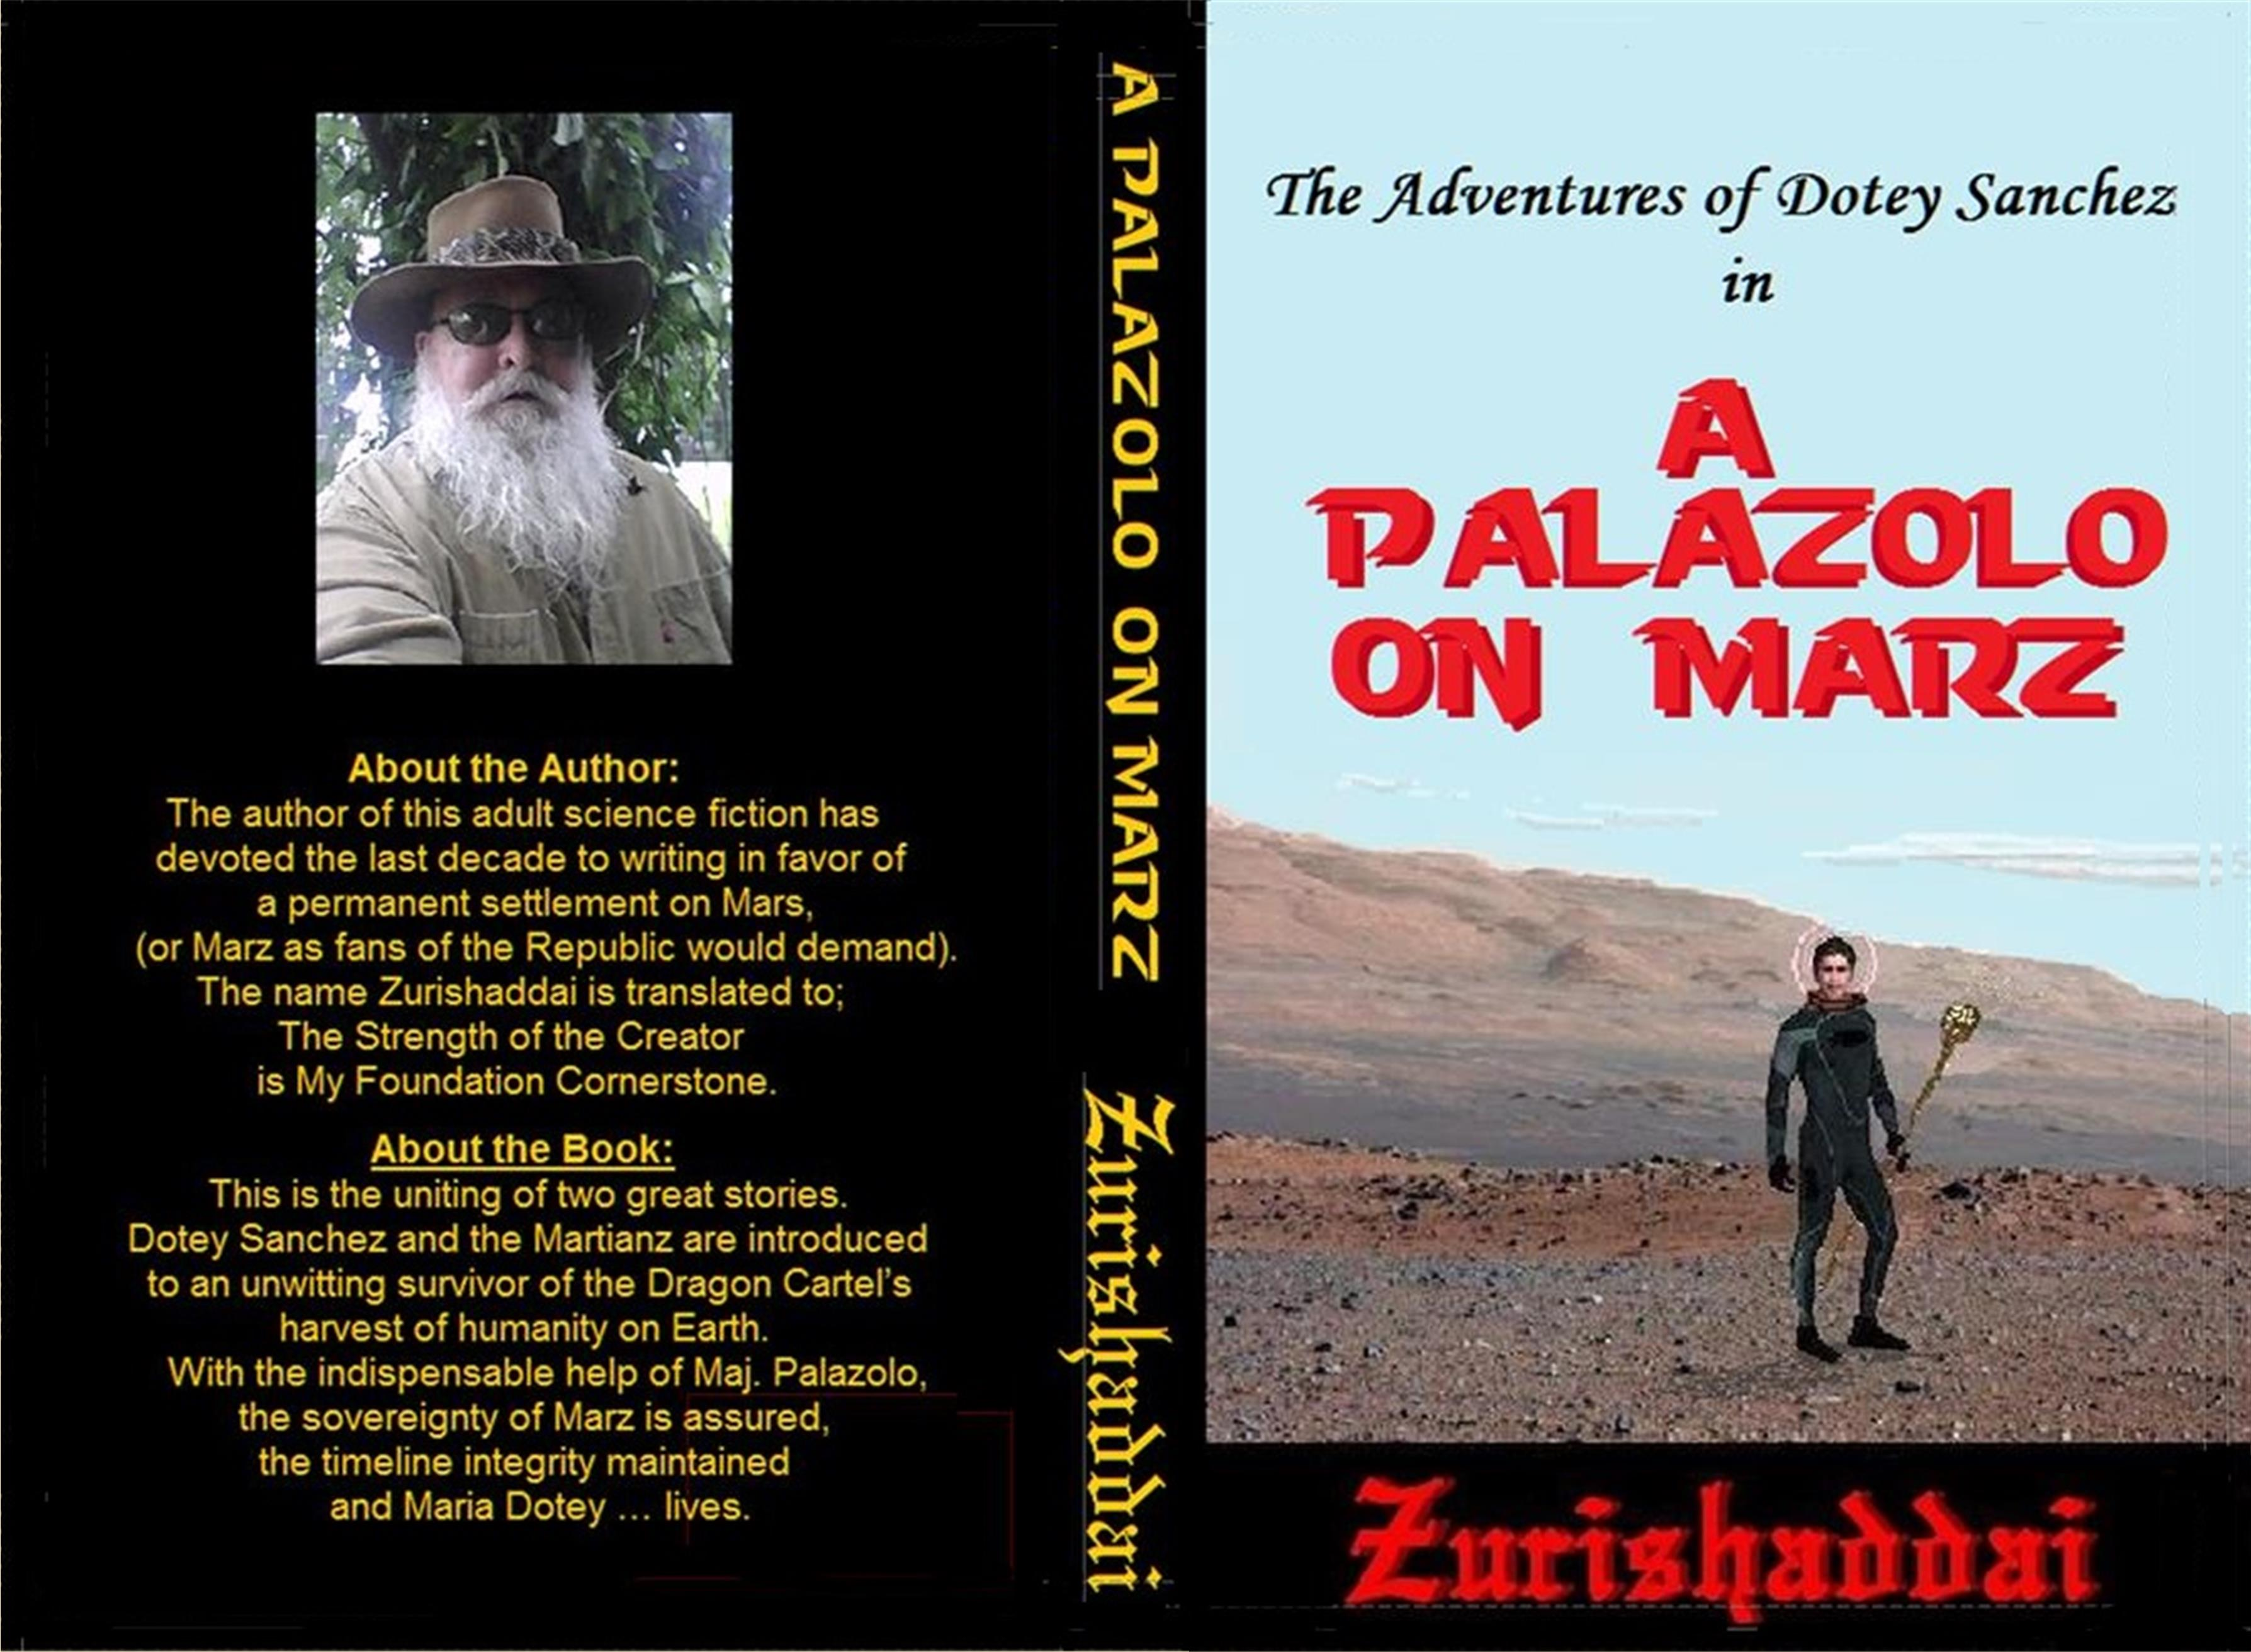 A Palazolo on Marz cover image